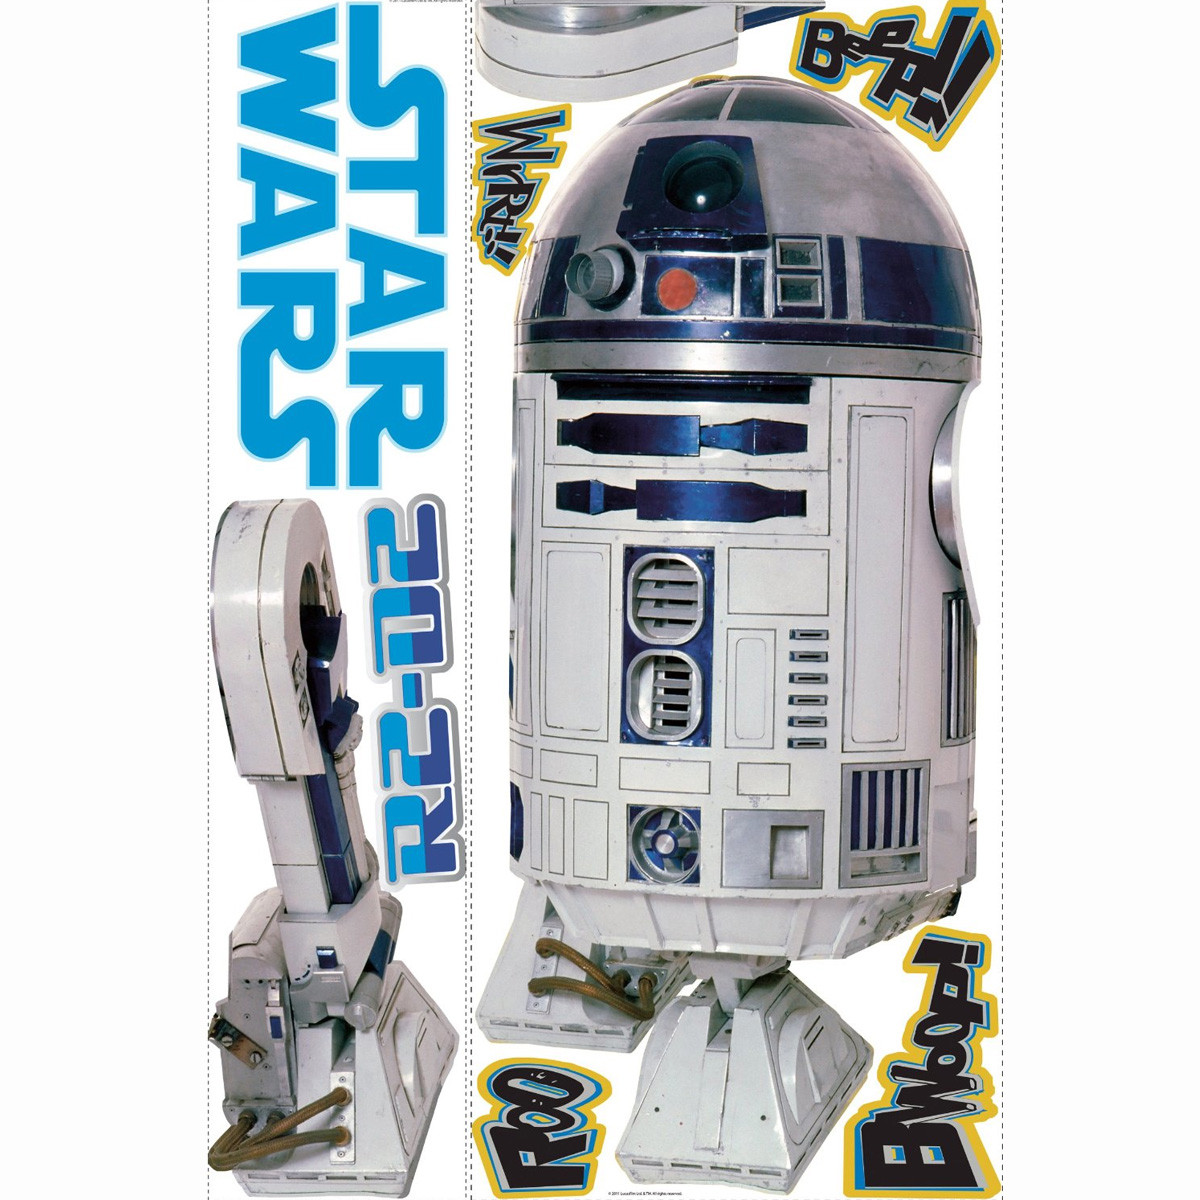 Stickers Géant R2D2 Star Wars